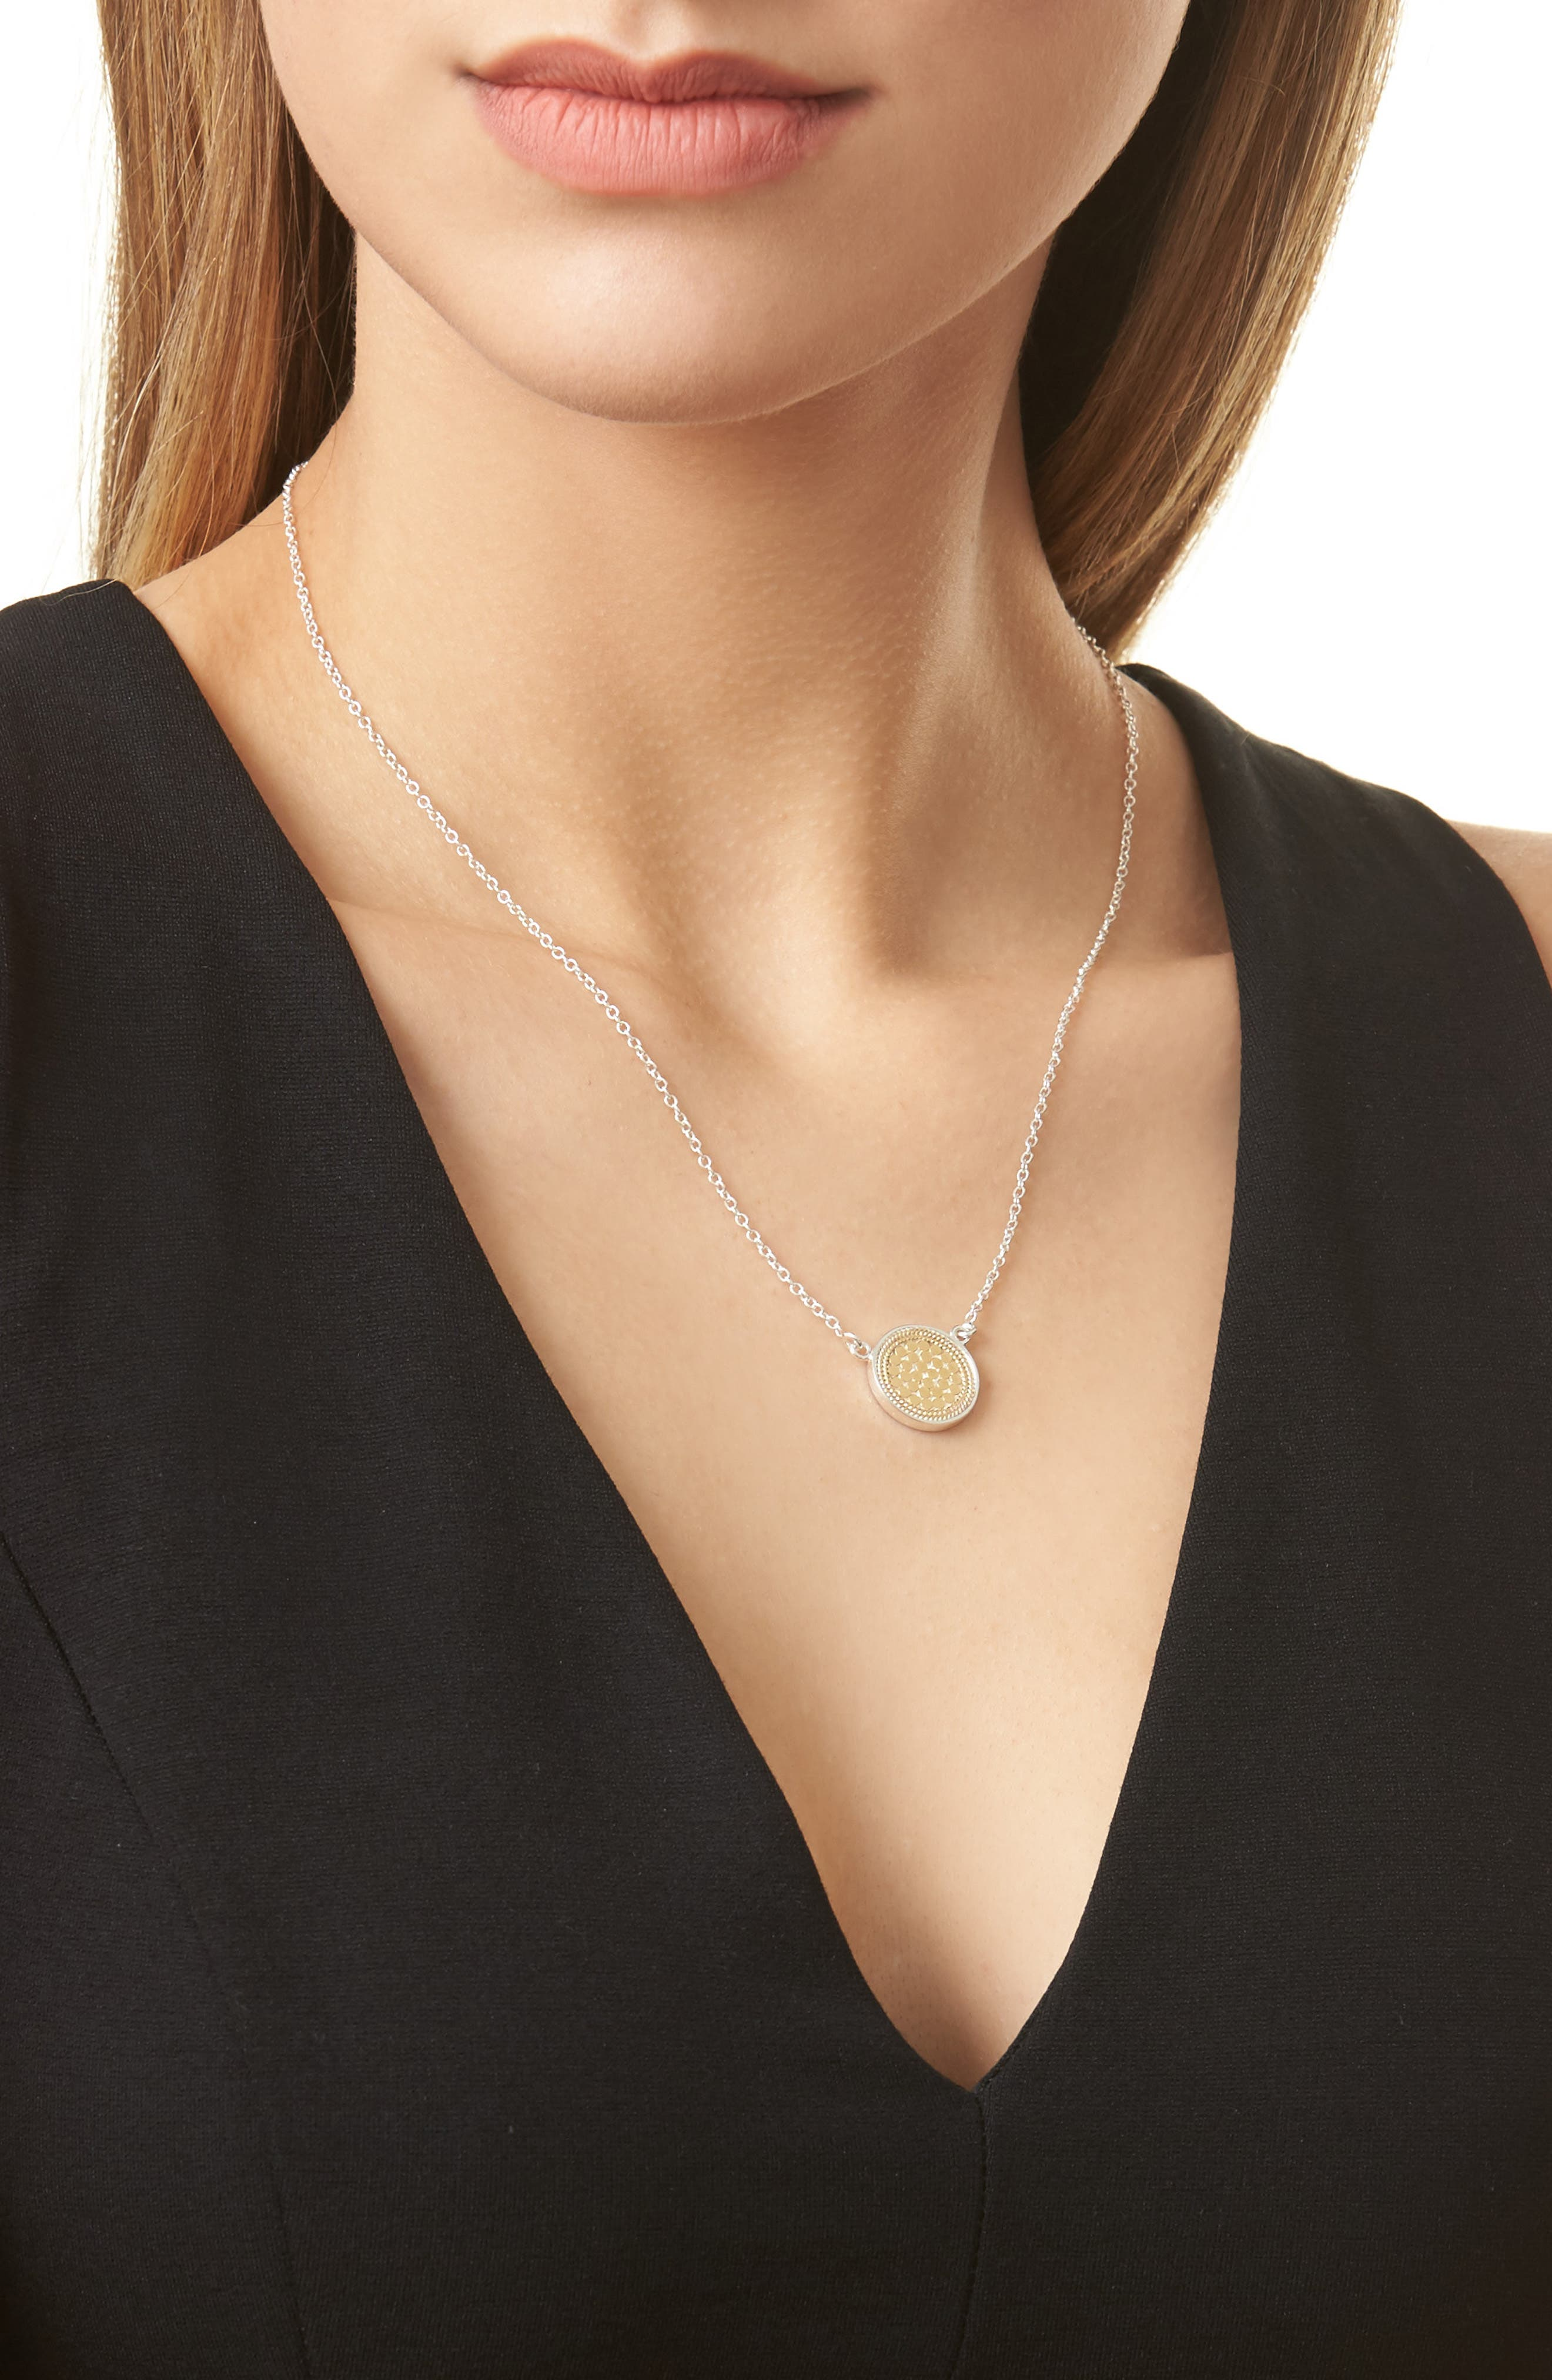 ANNA BECK, Reversible Disc Necklace, Alternate thumbnail 2, color, GOLD/ SILVER